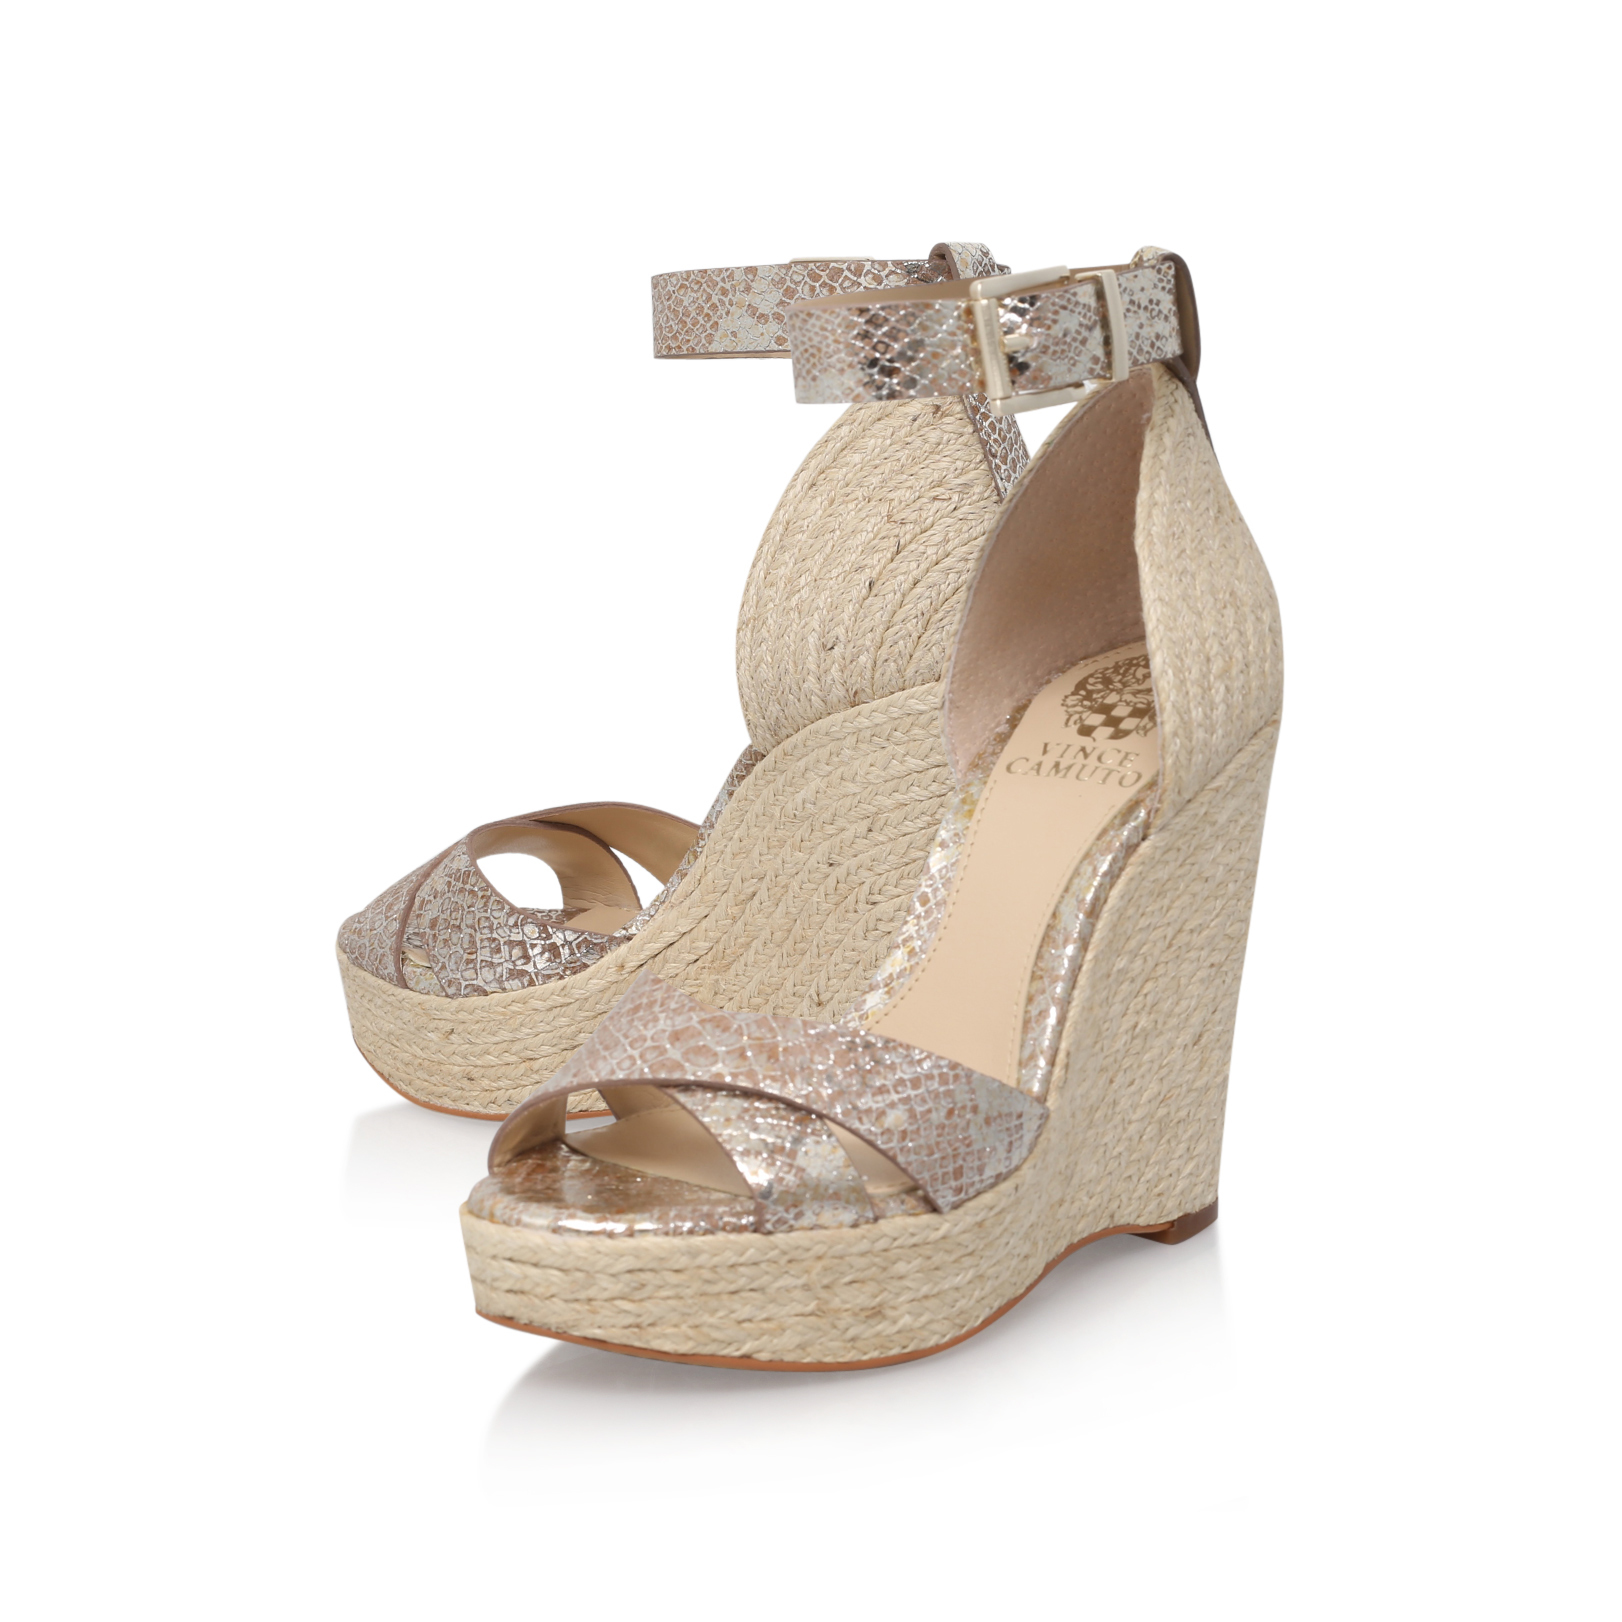 2fedf951799 Vince Camuto